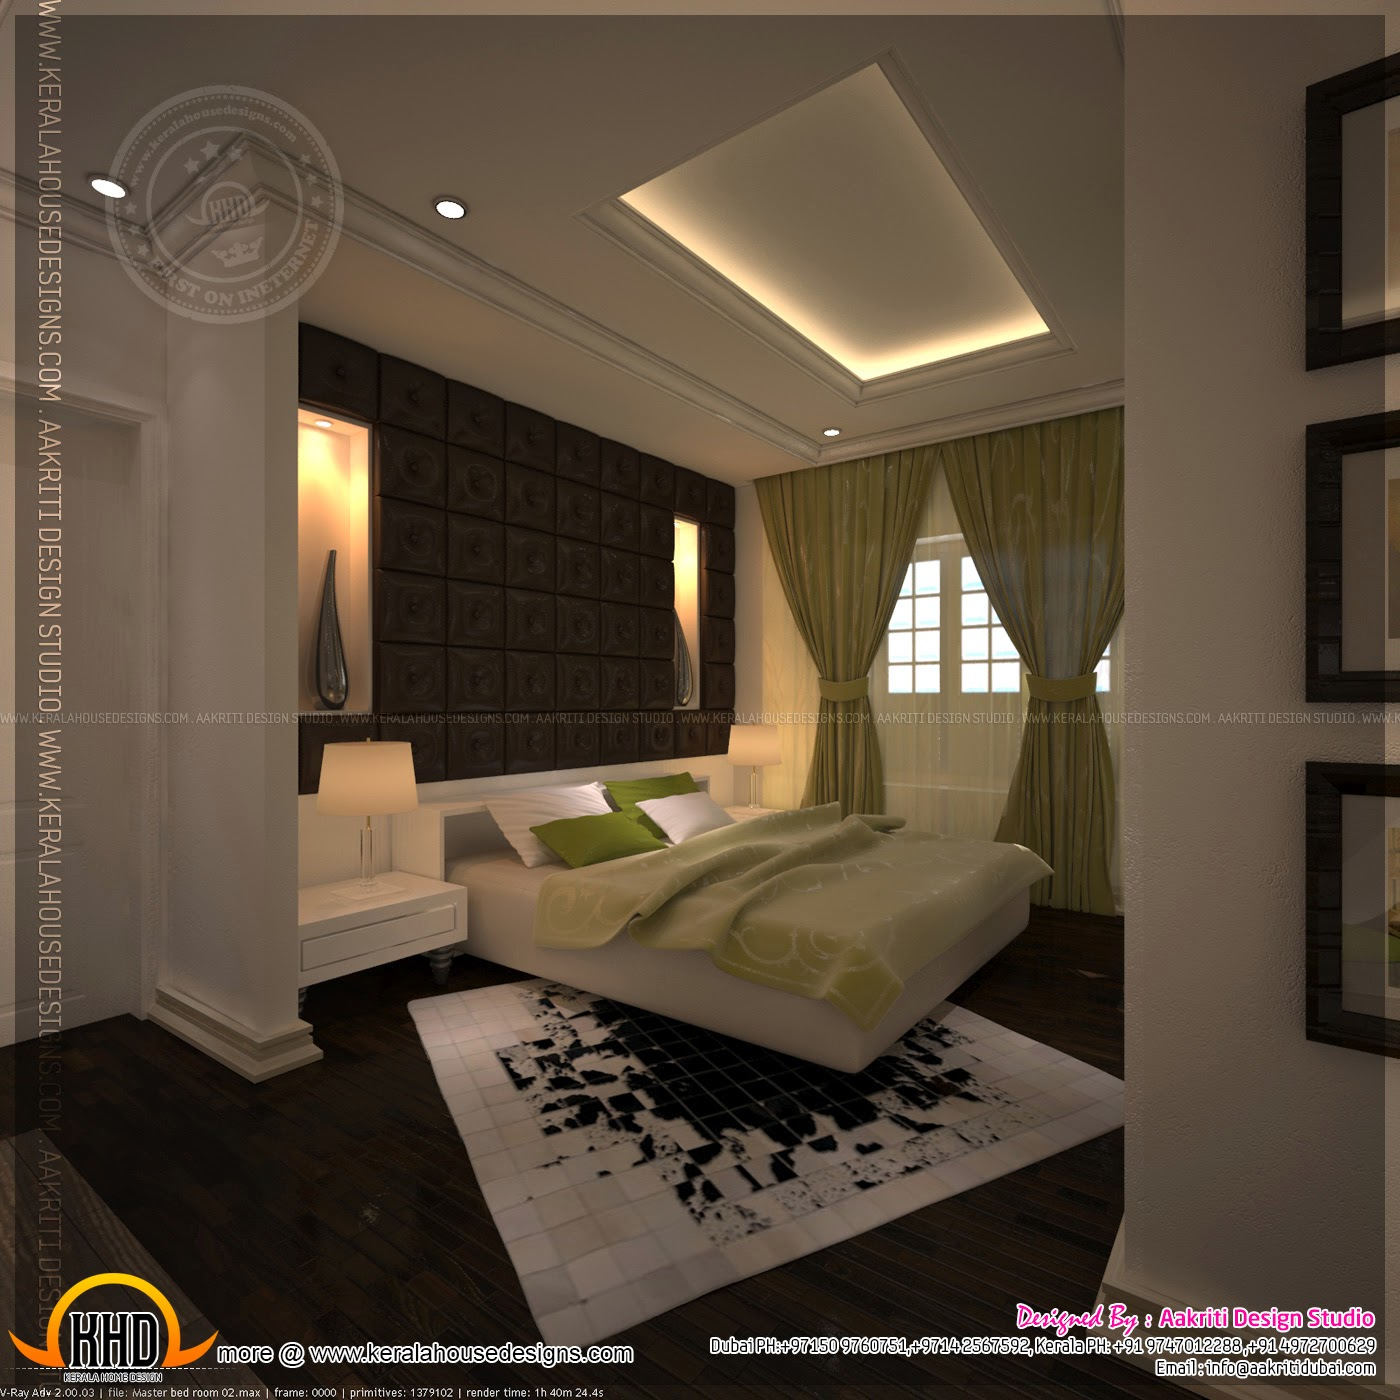 Master bedroom and bathroom interior design kerala home for Room design photos